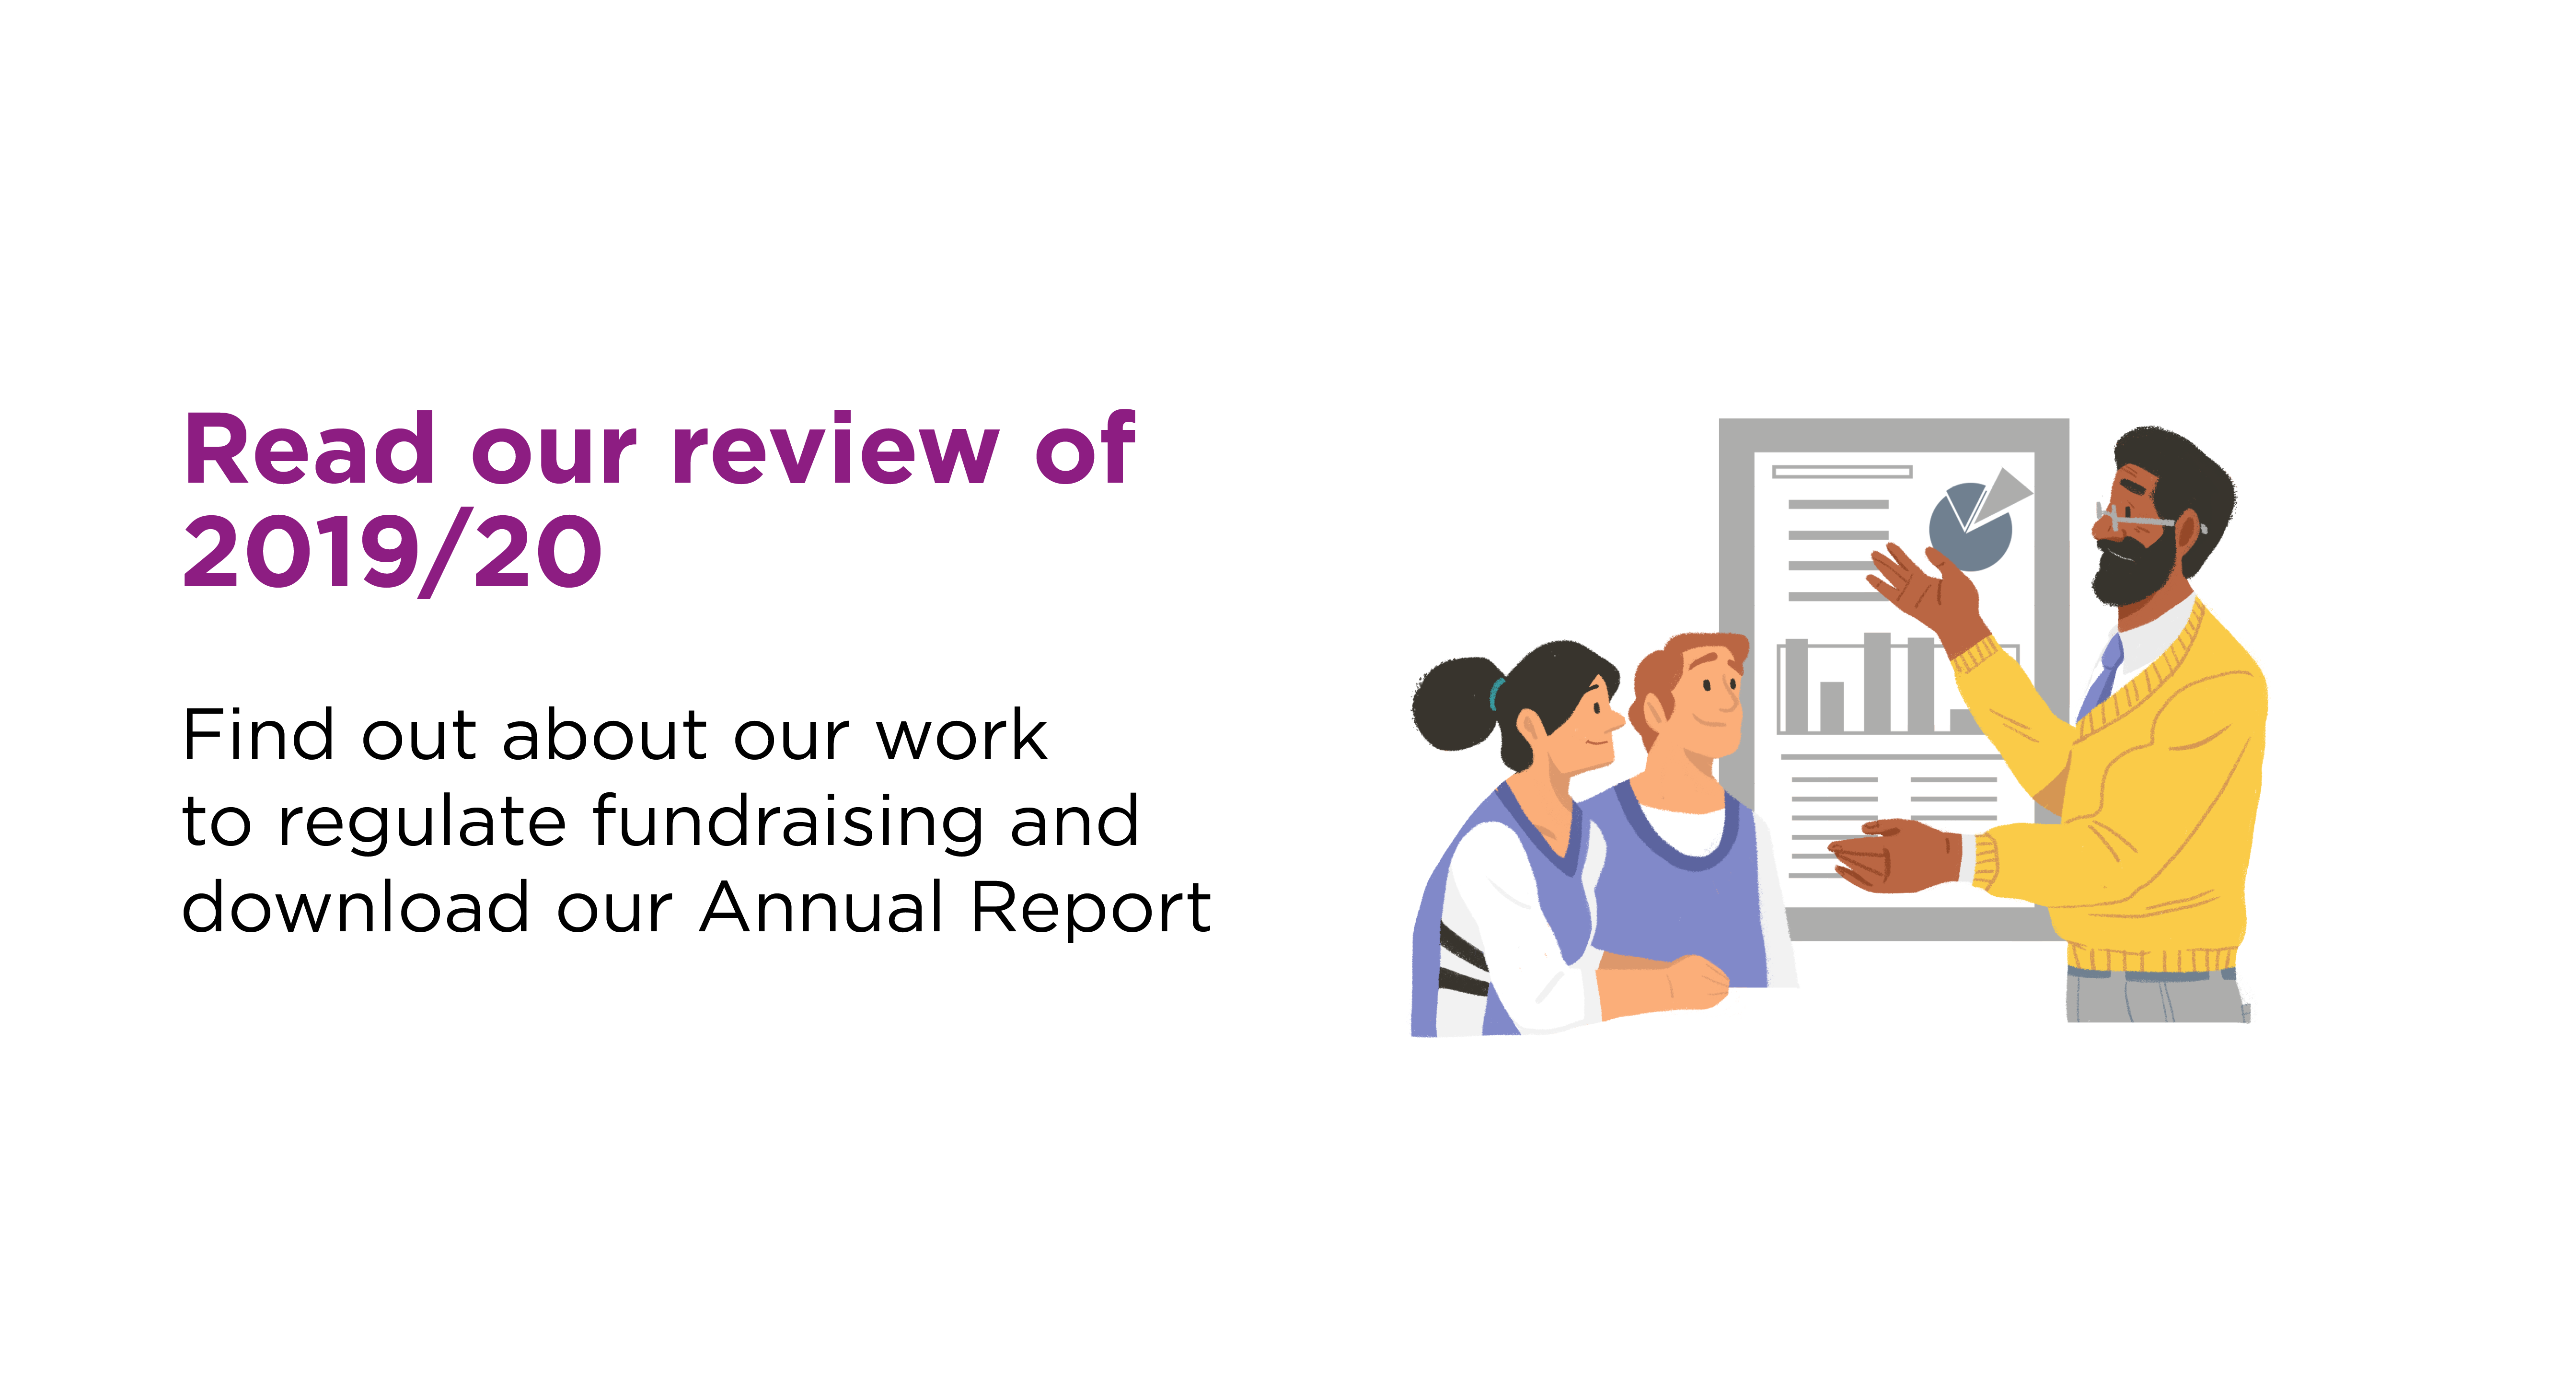 Read our review of 2019/20